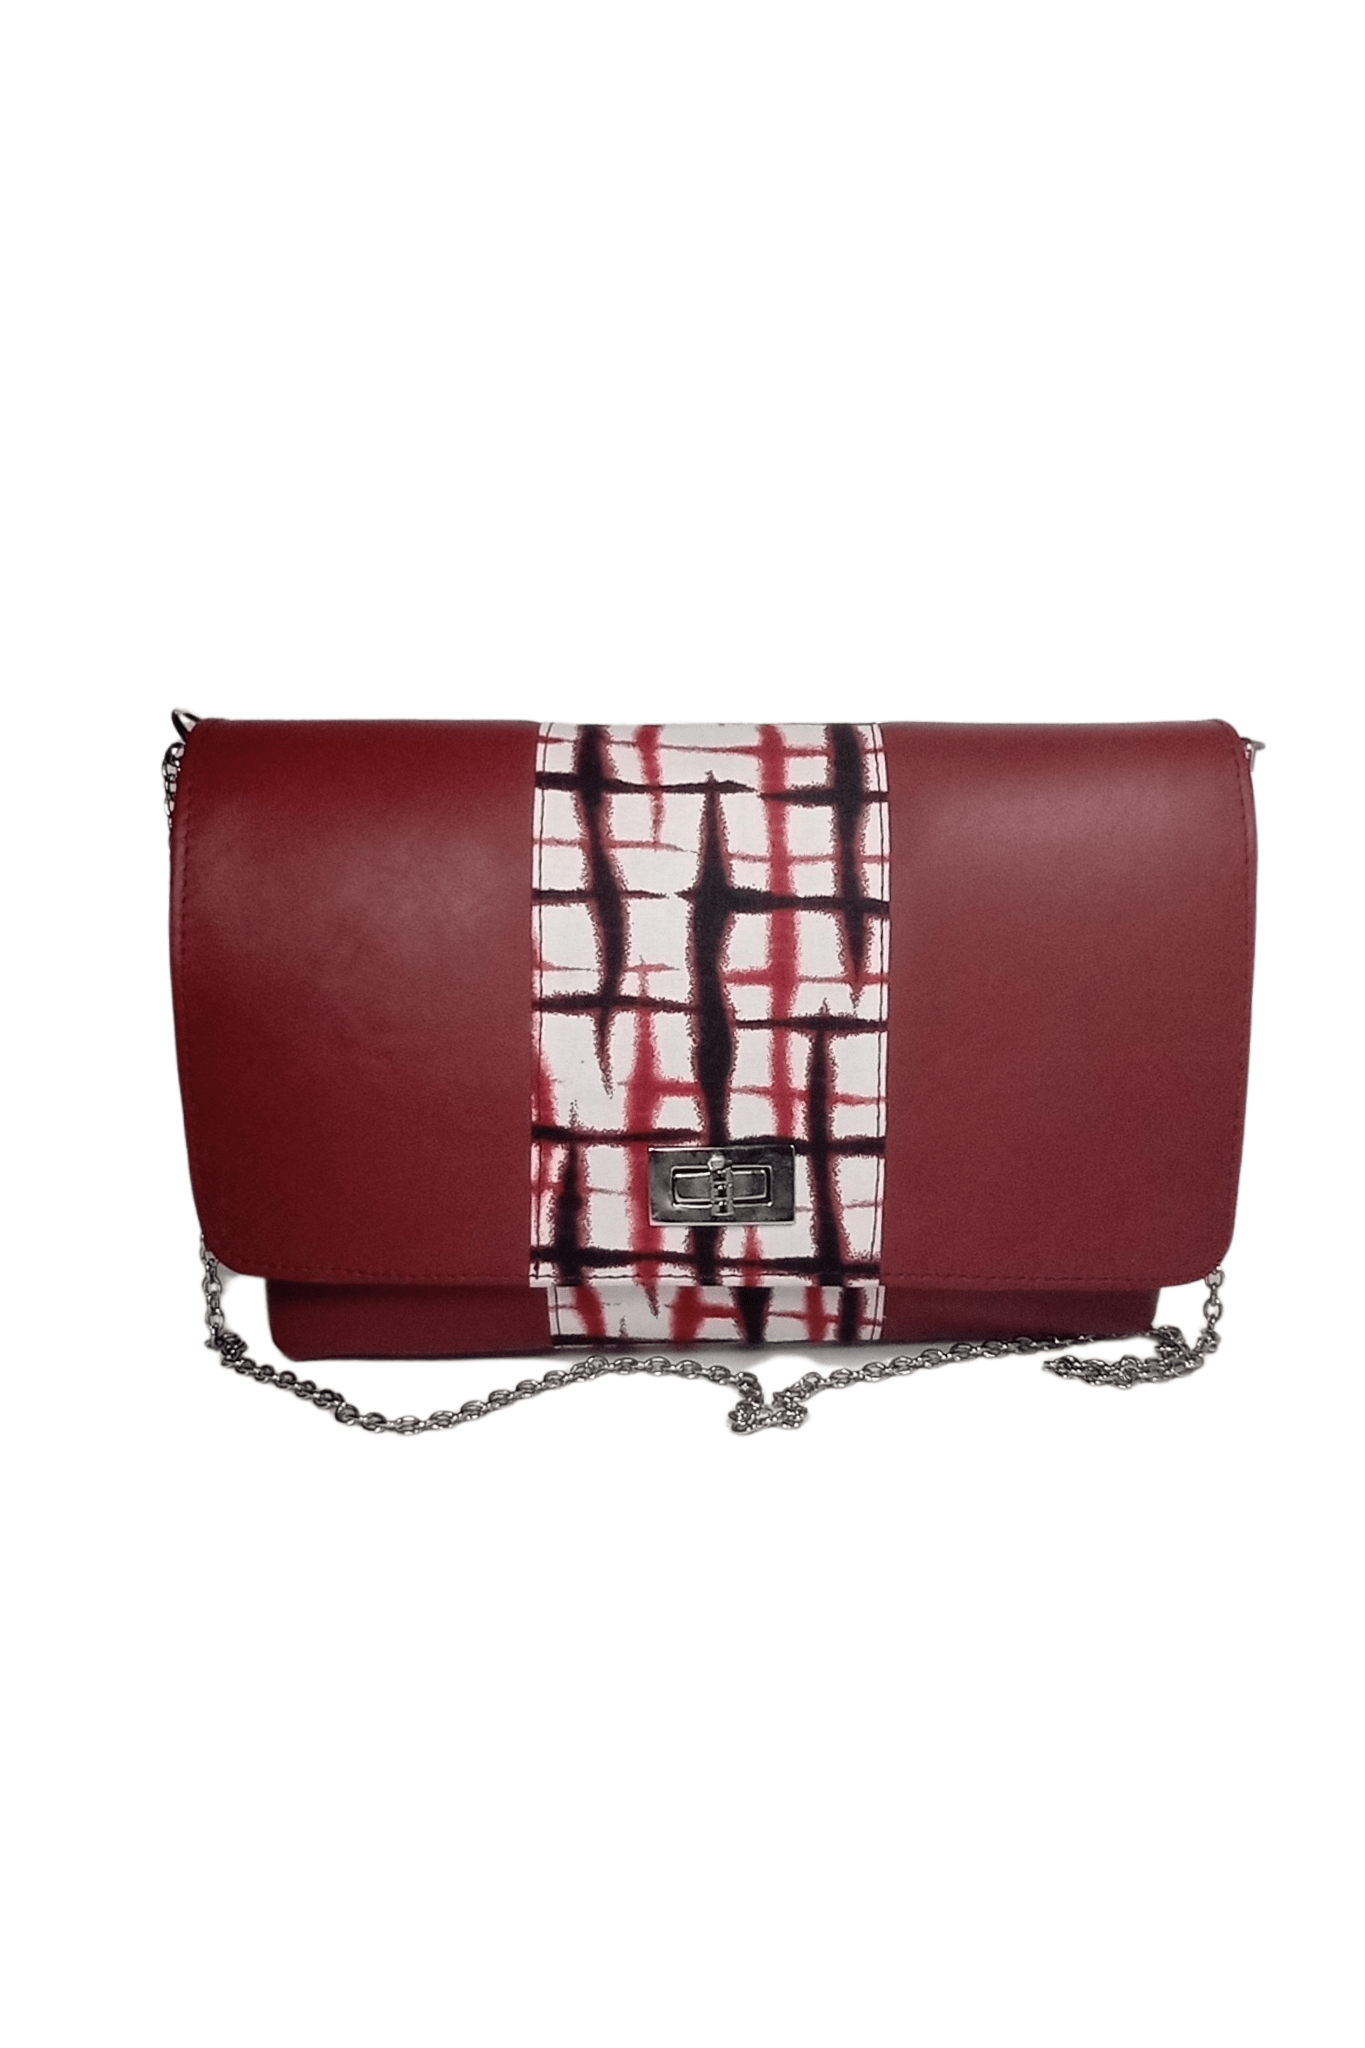 Red African Print Leather Handbag DEZE by Naborhi